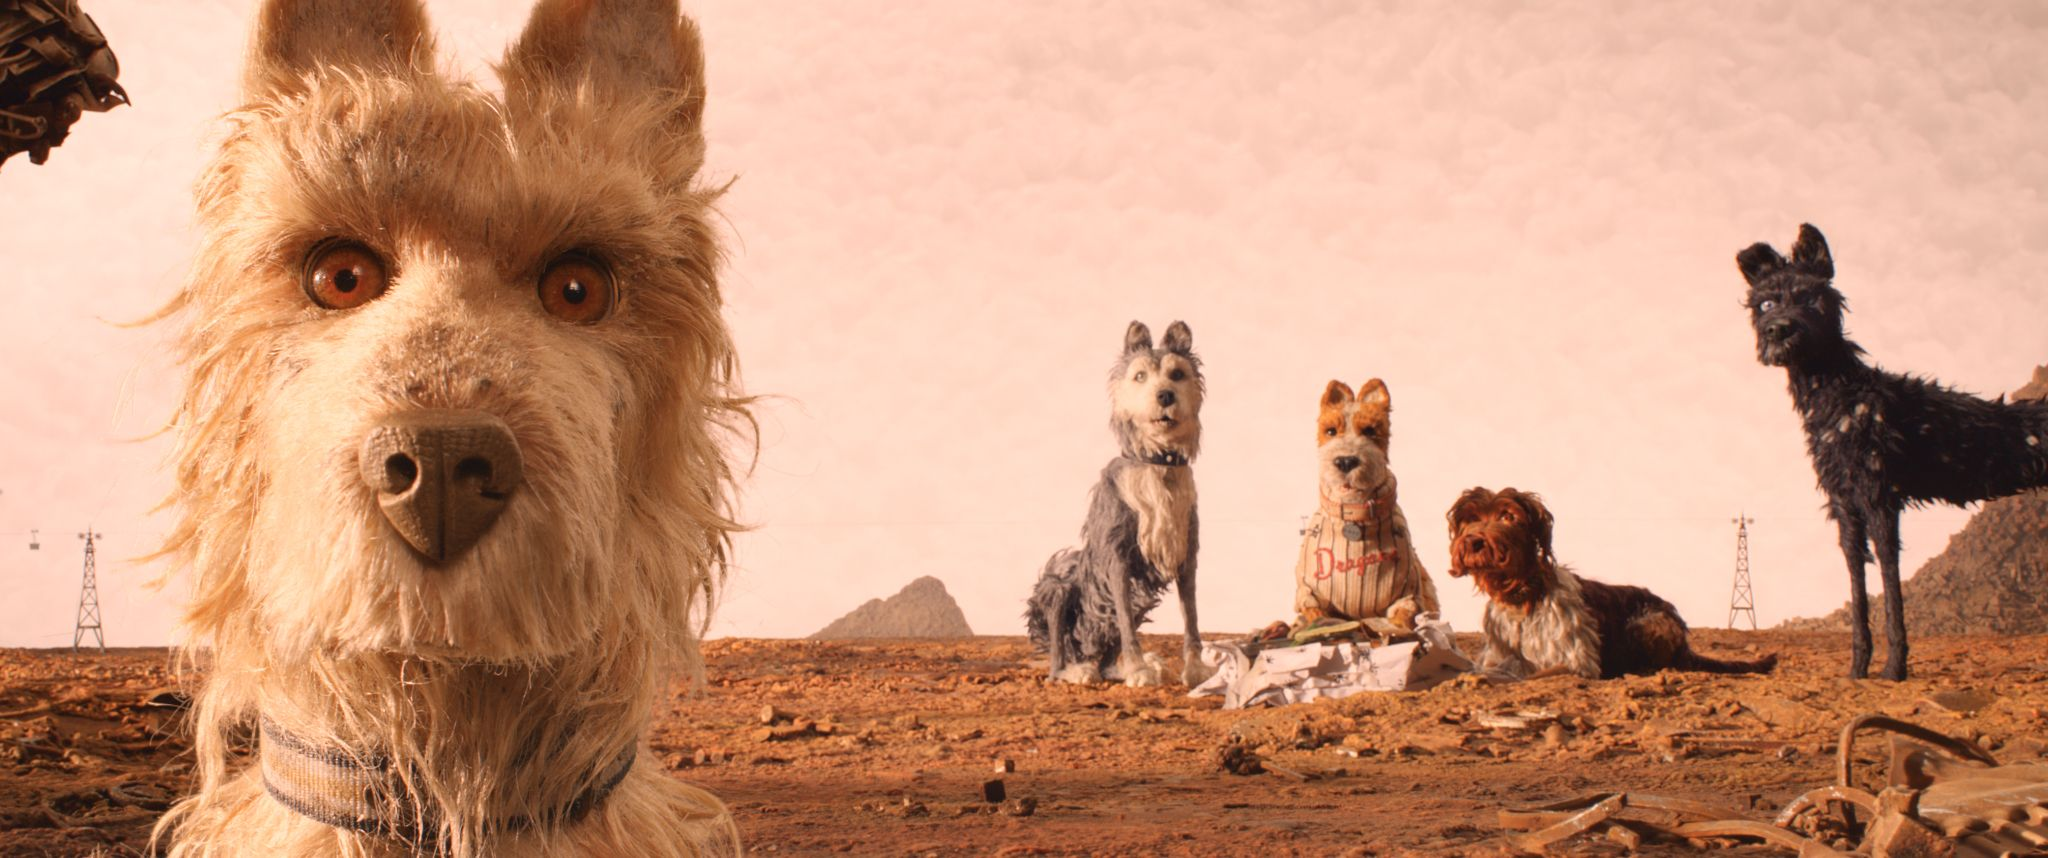 Isle of Dogs Blu-ray Review: A Love Letter to Dogs and Stop-Motion